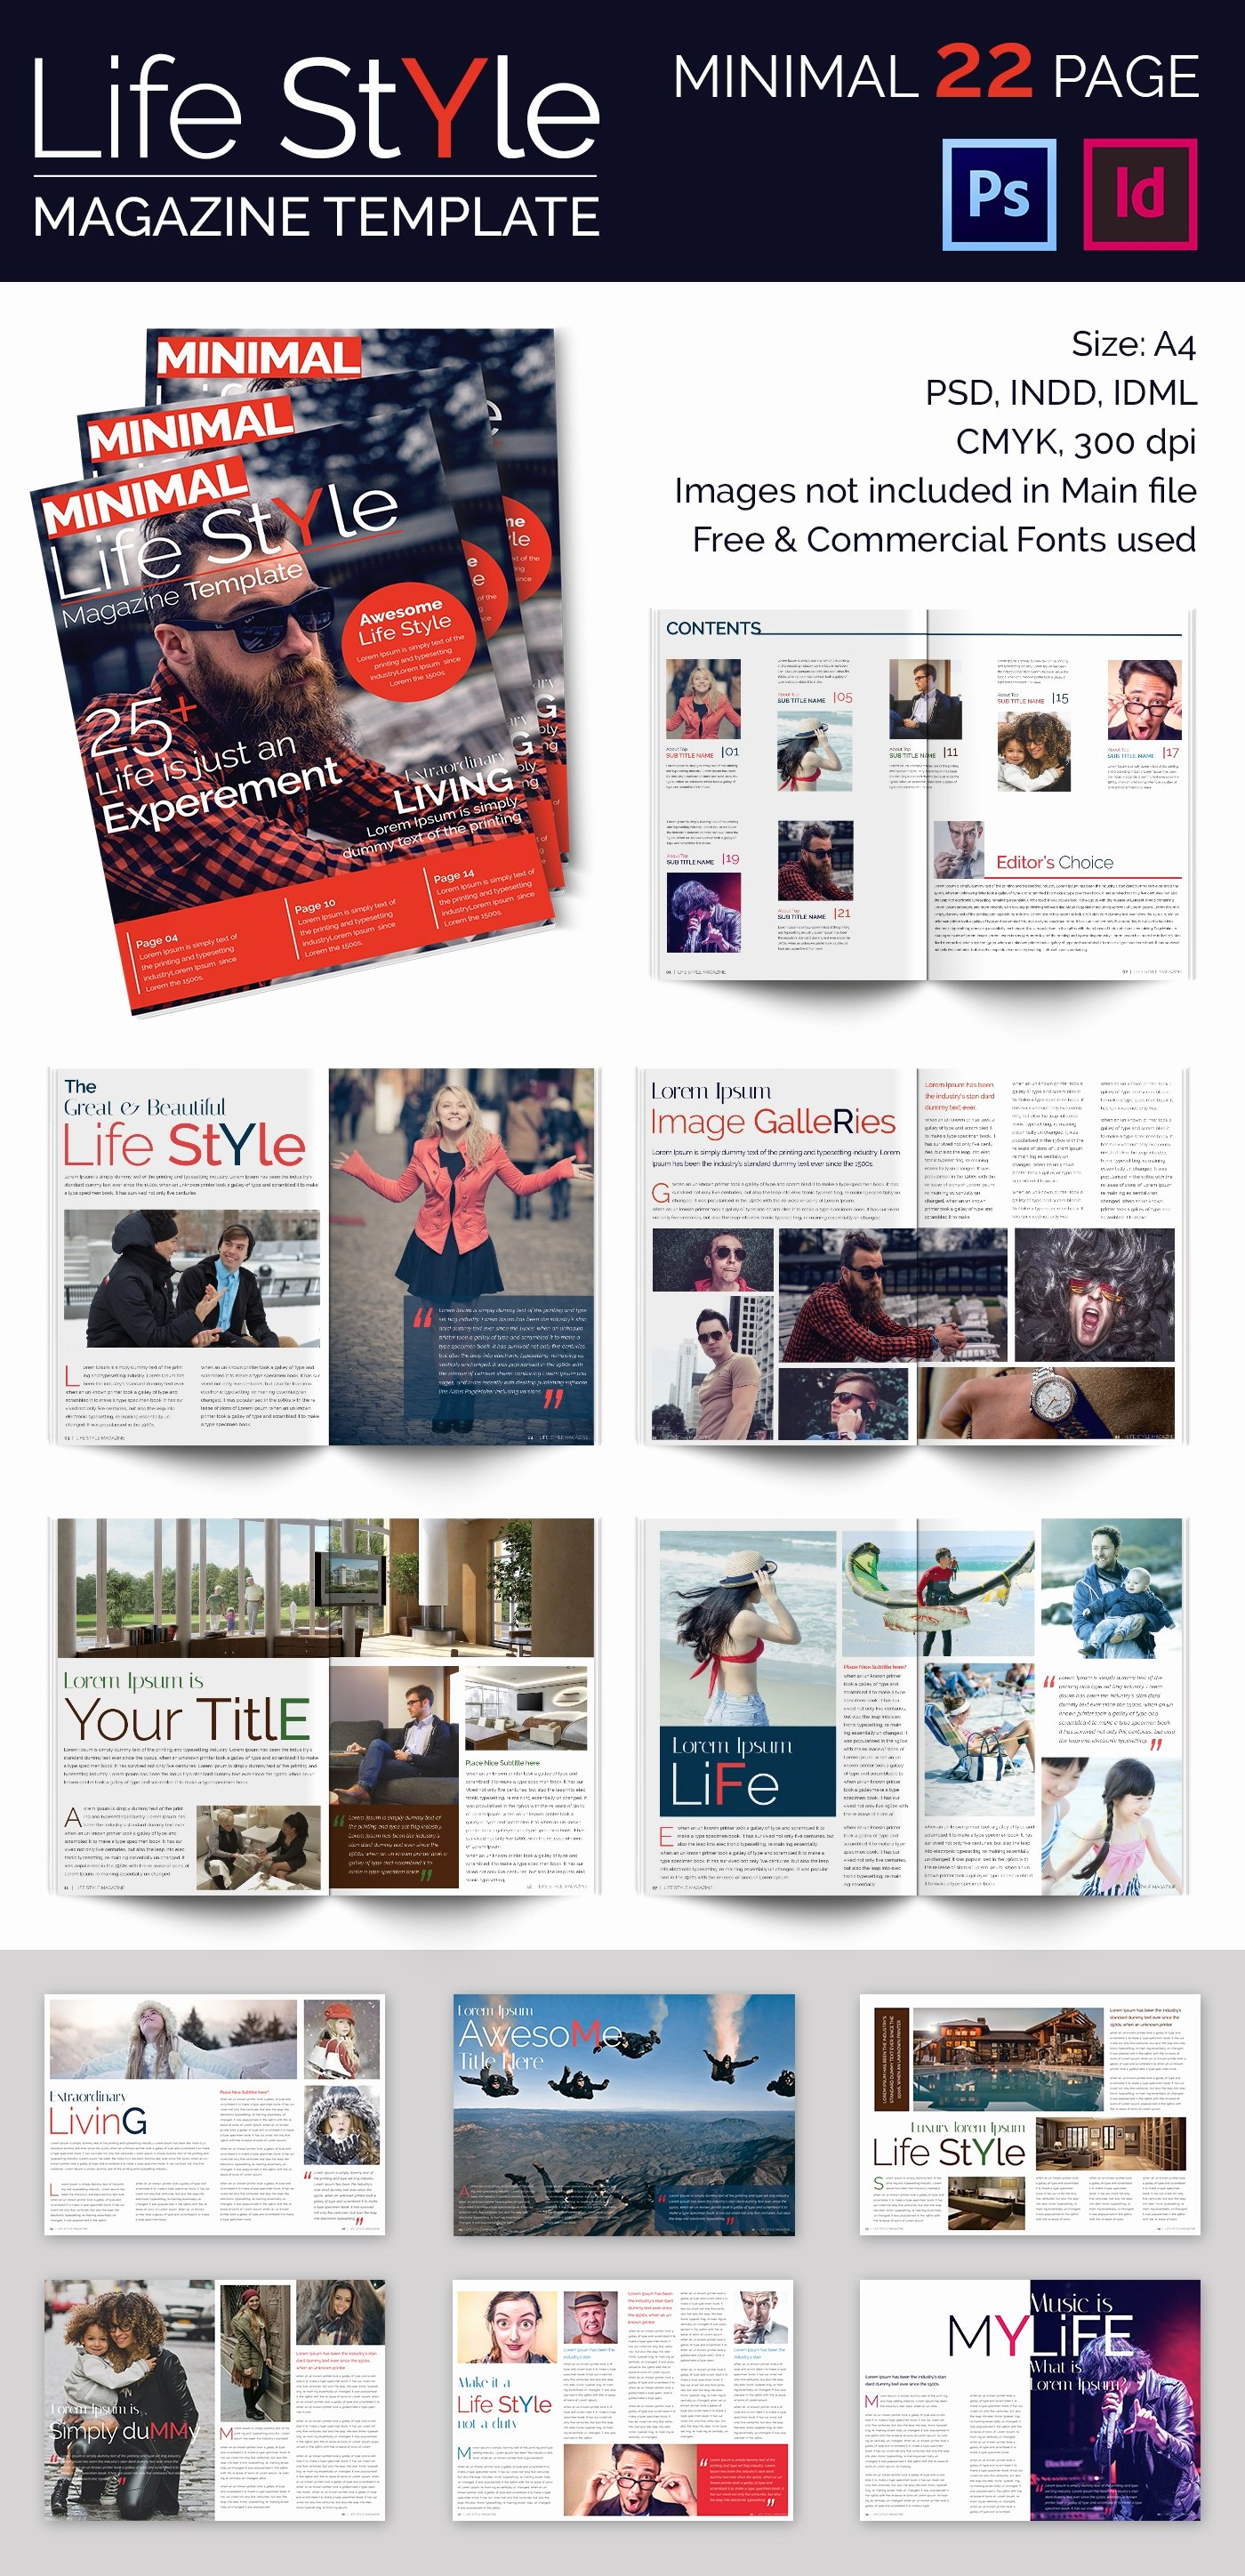 Magazine Templates for Word New 55 Brand New Magazine Templates Free Word Psd Eps Ai